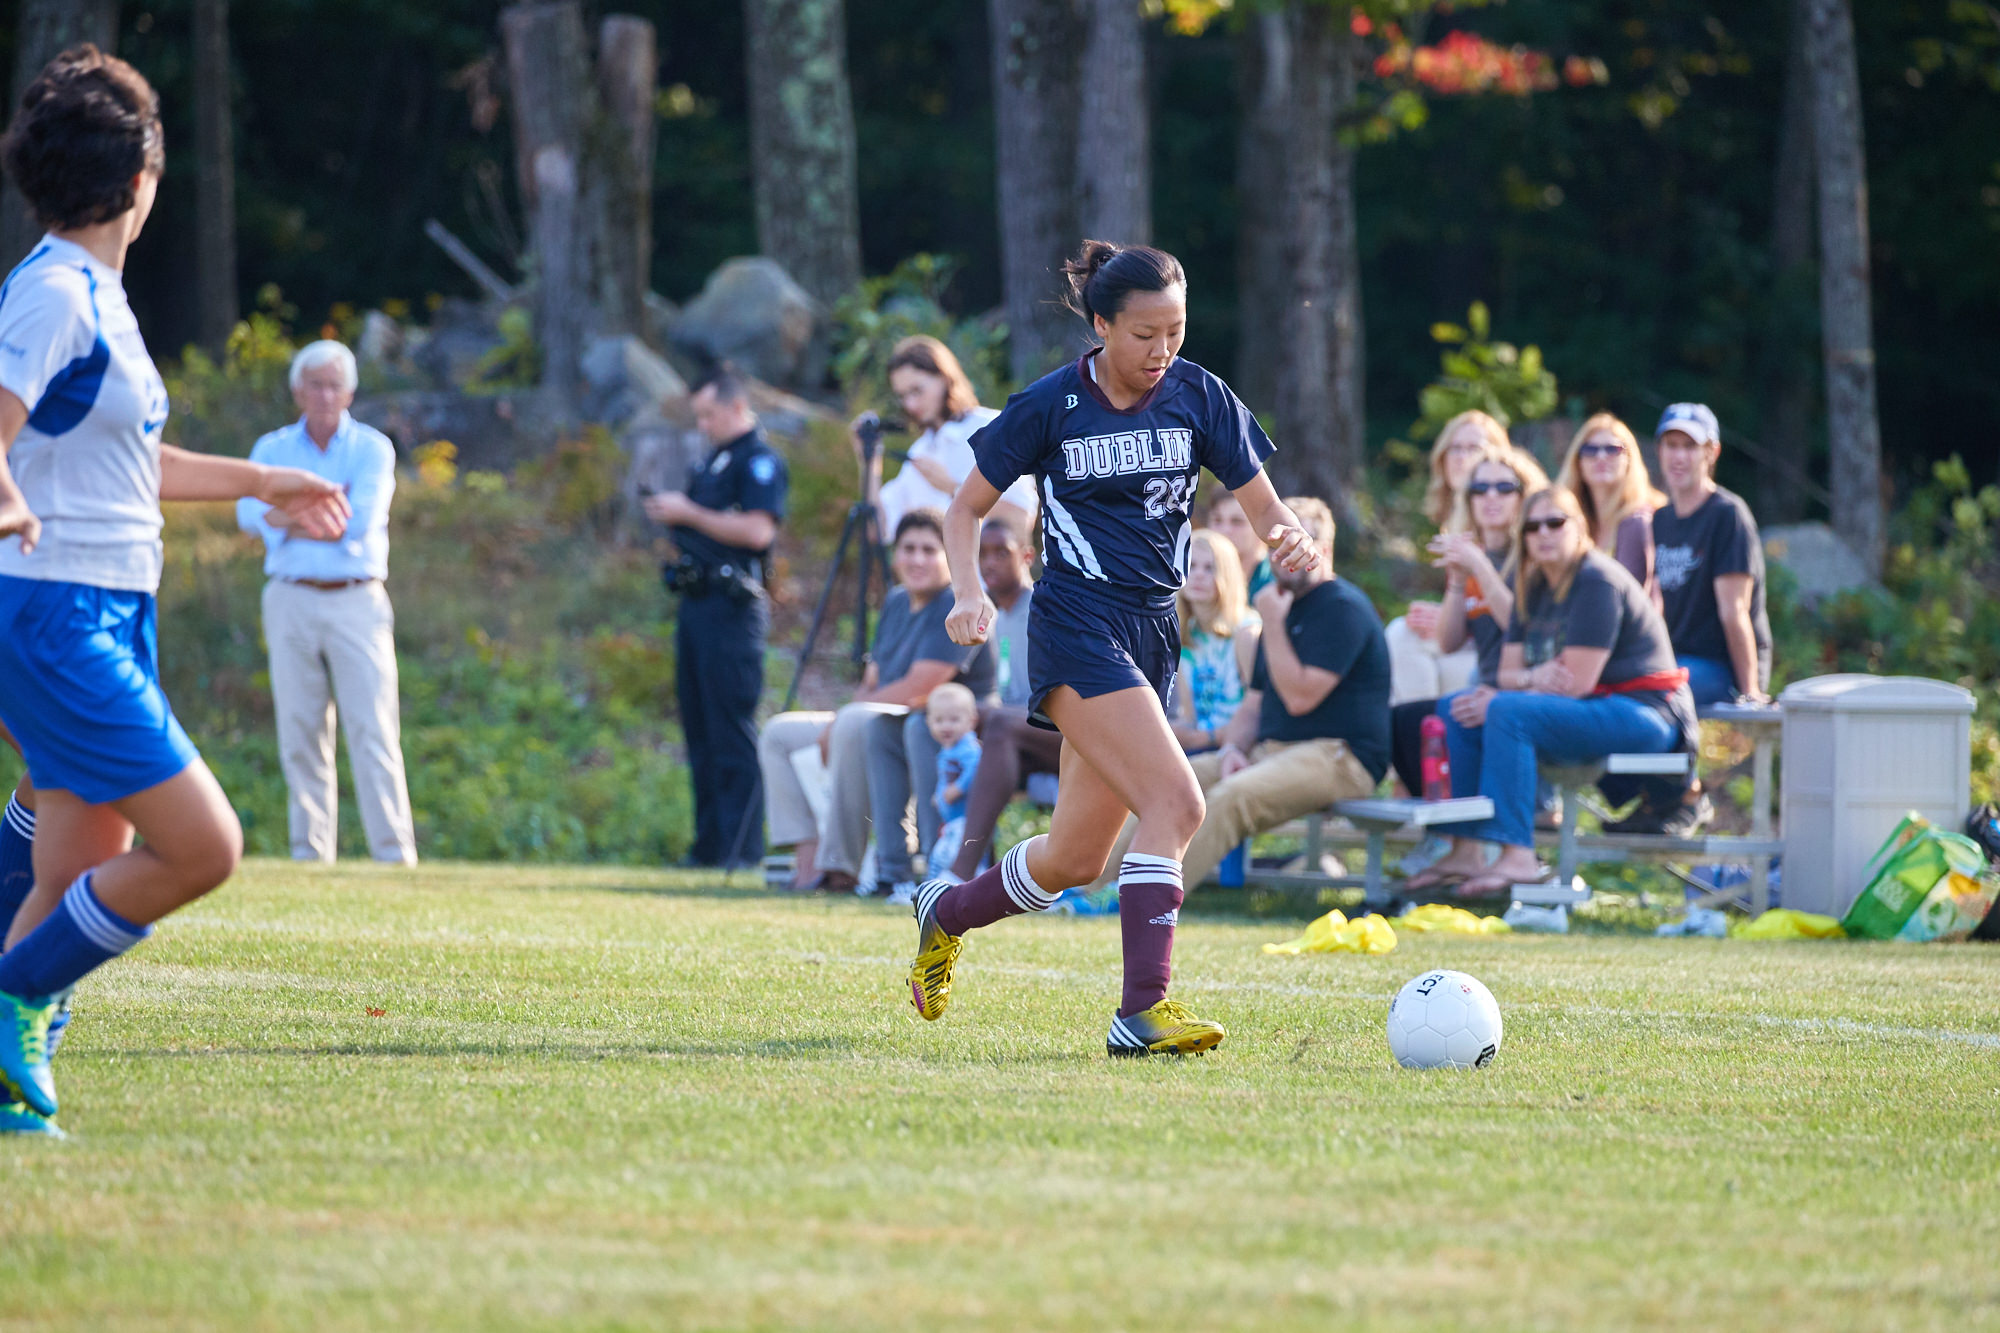 Girls Varsity Soccer vs. Four Rivers Charter Public School - September 23, 2016 - 41410- 000128.jpg